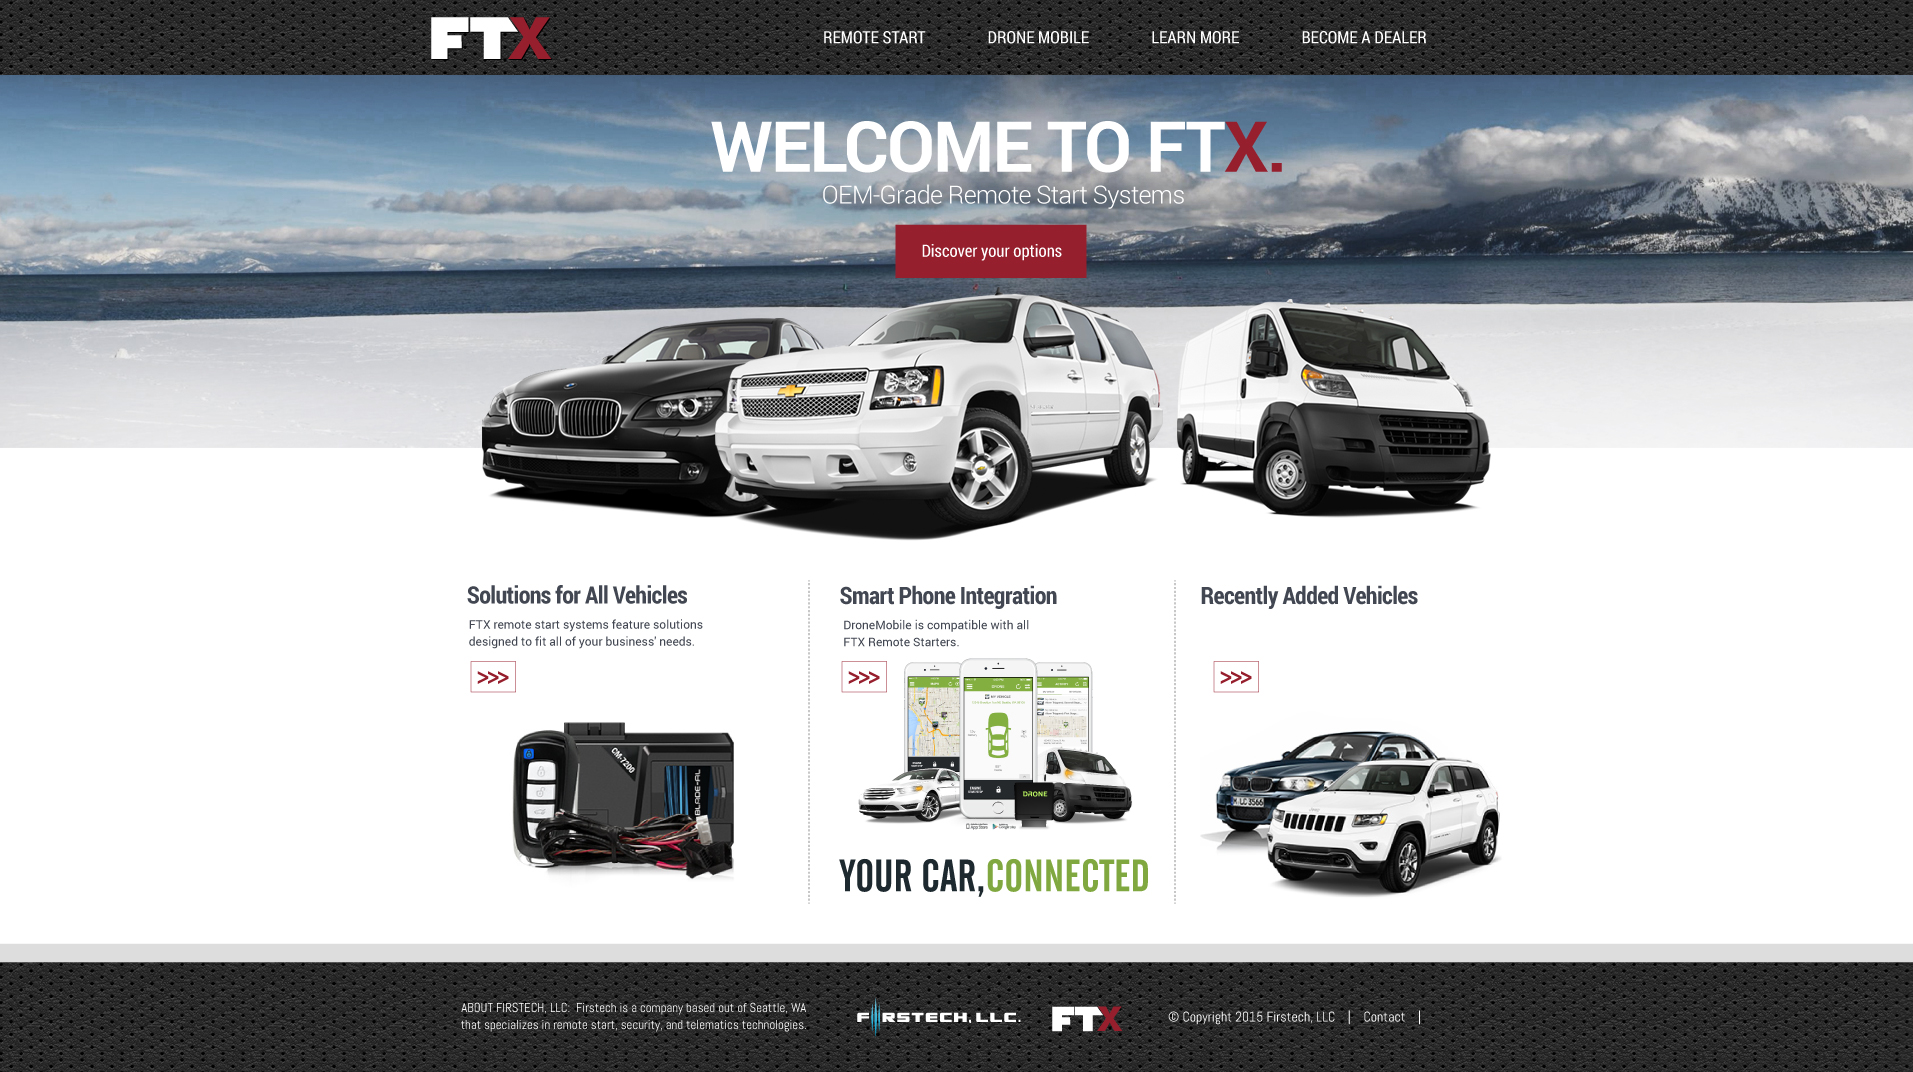 FTX website